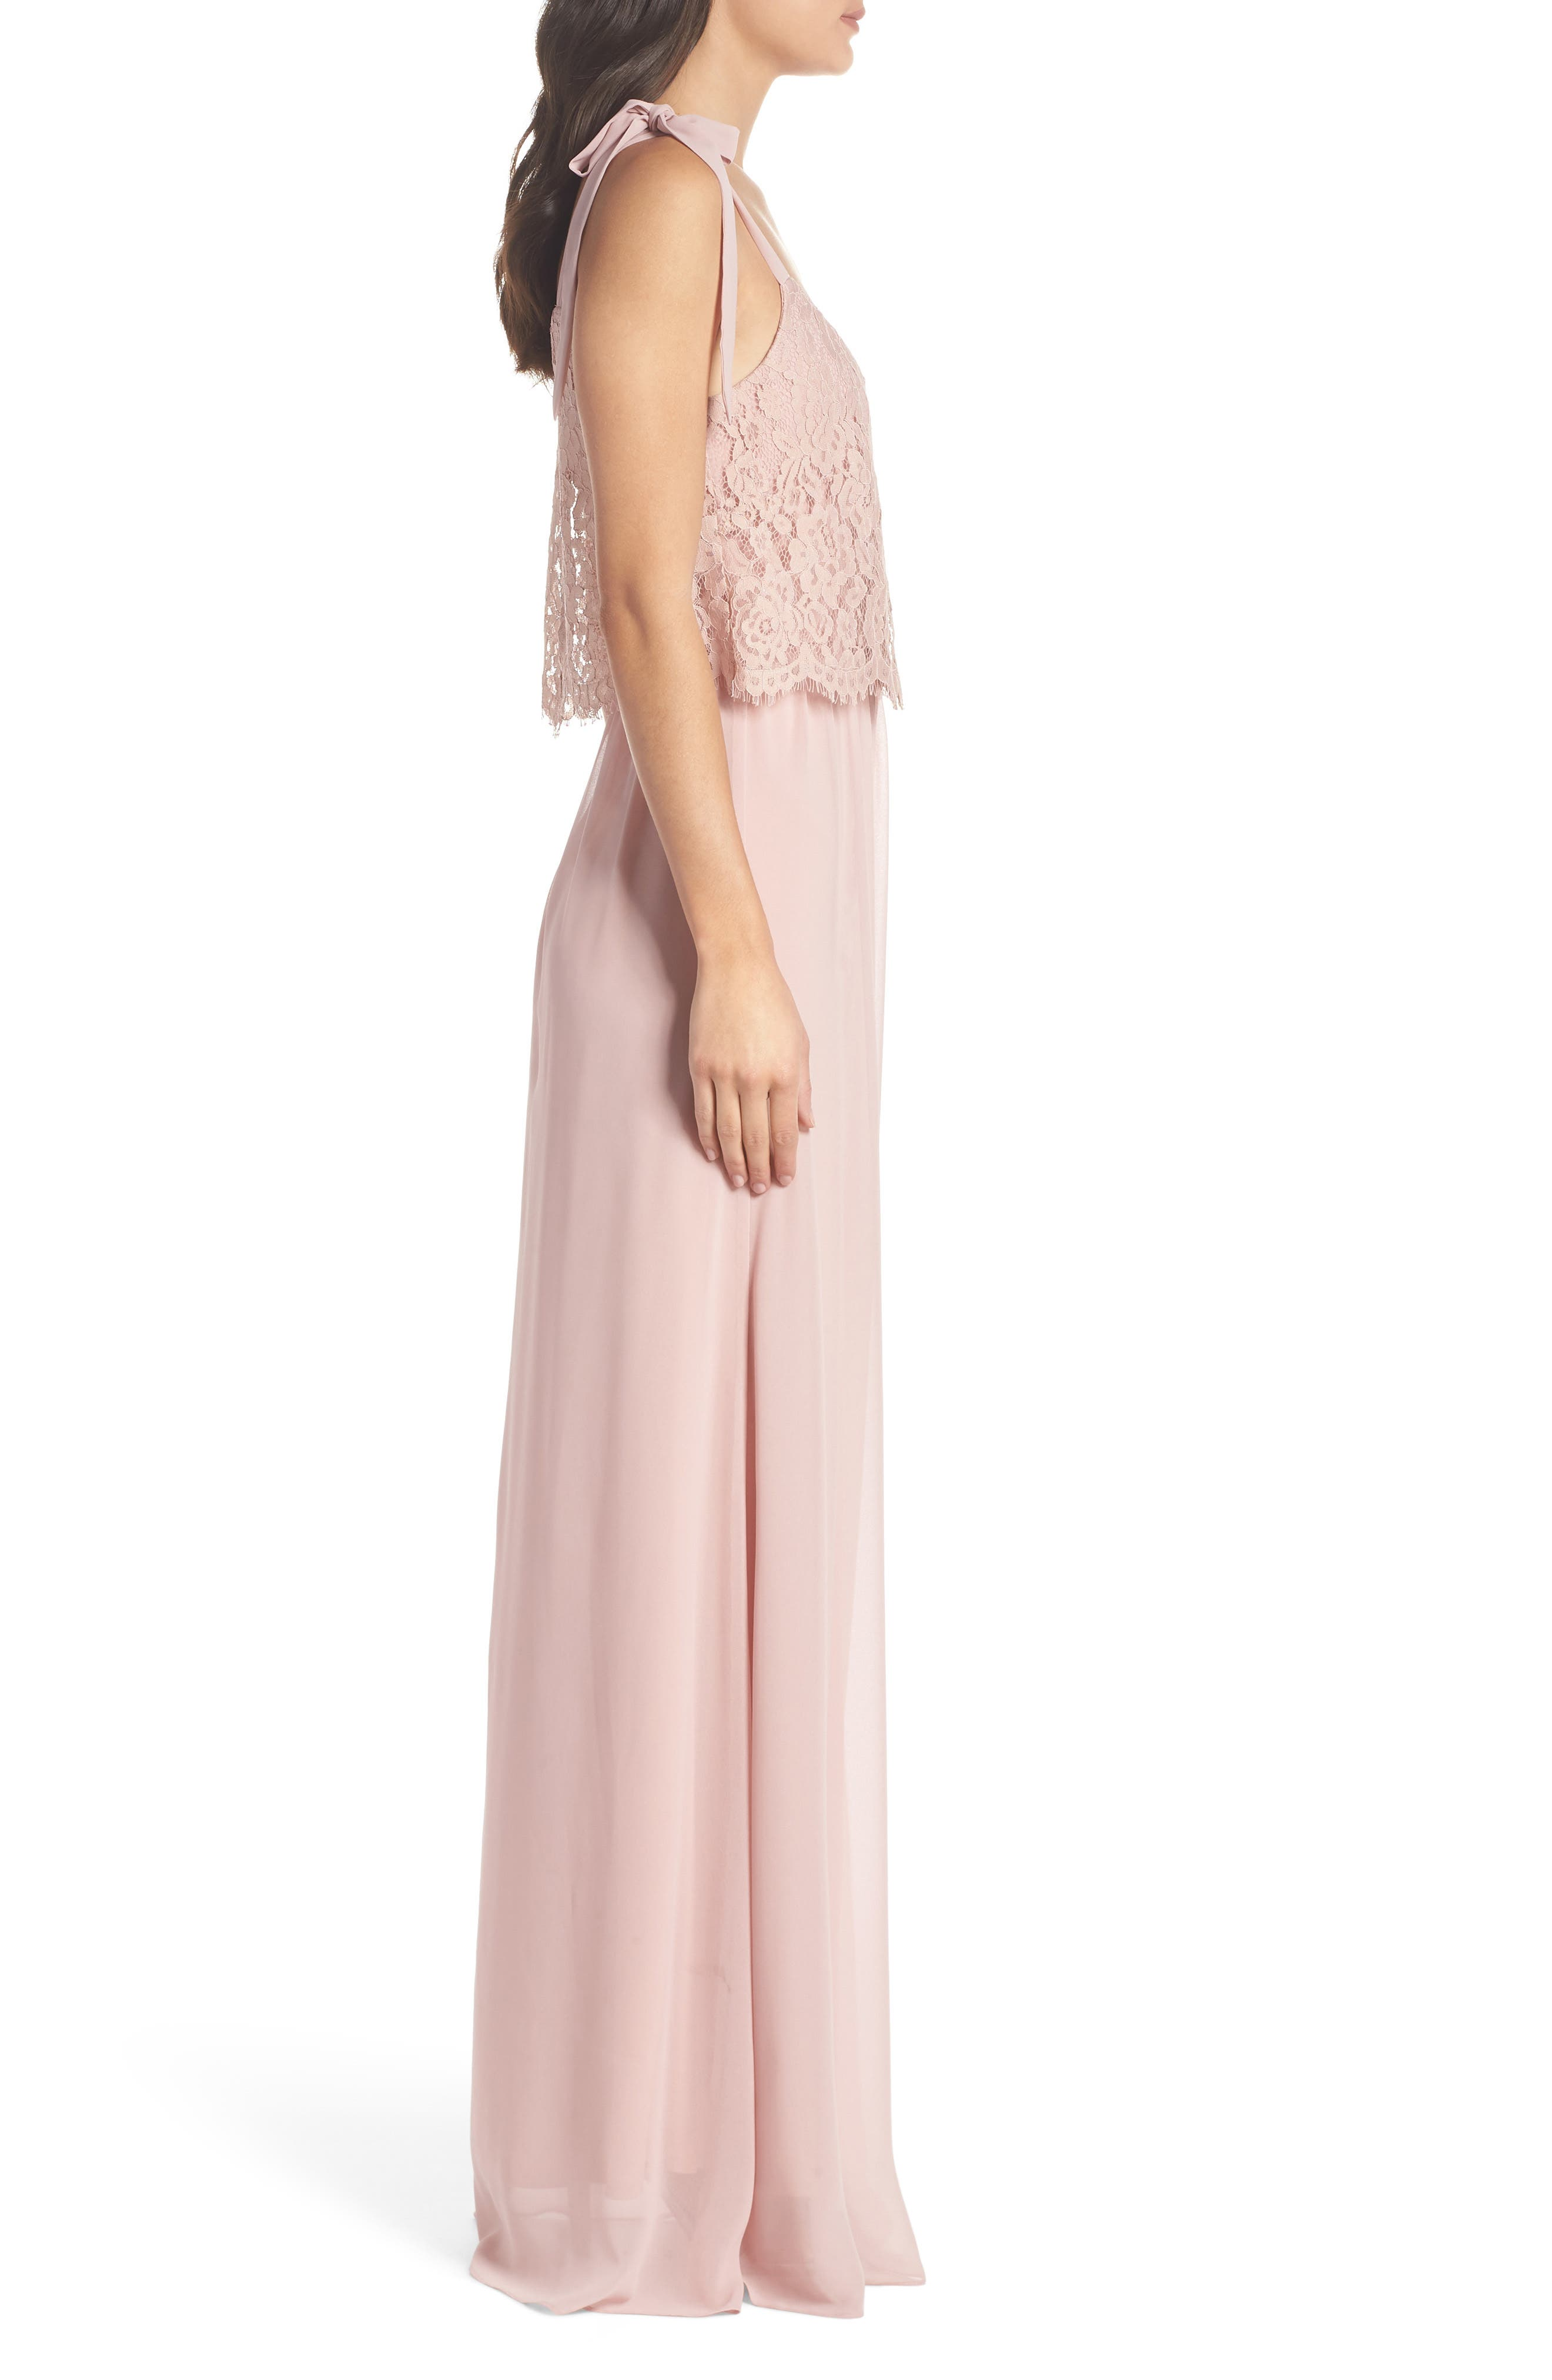 Koko Tie Shoulder Lace Bodice Gown,                             Alternate thumbnail 3, color,                             MAUVE